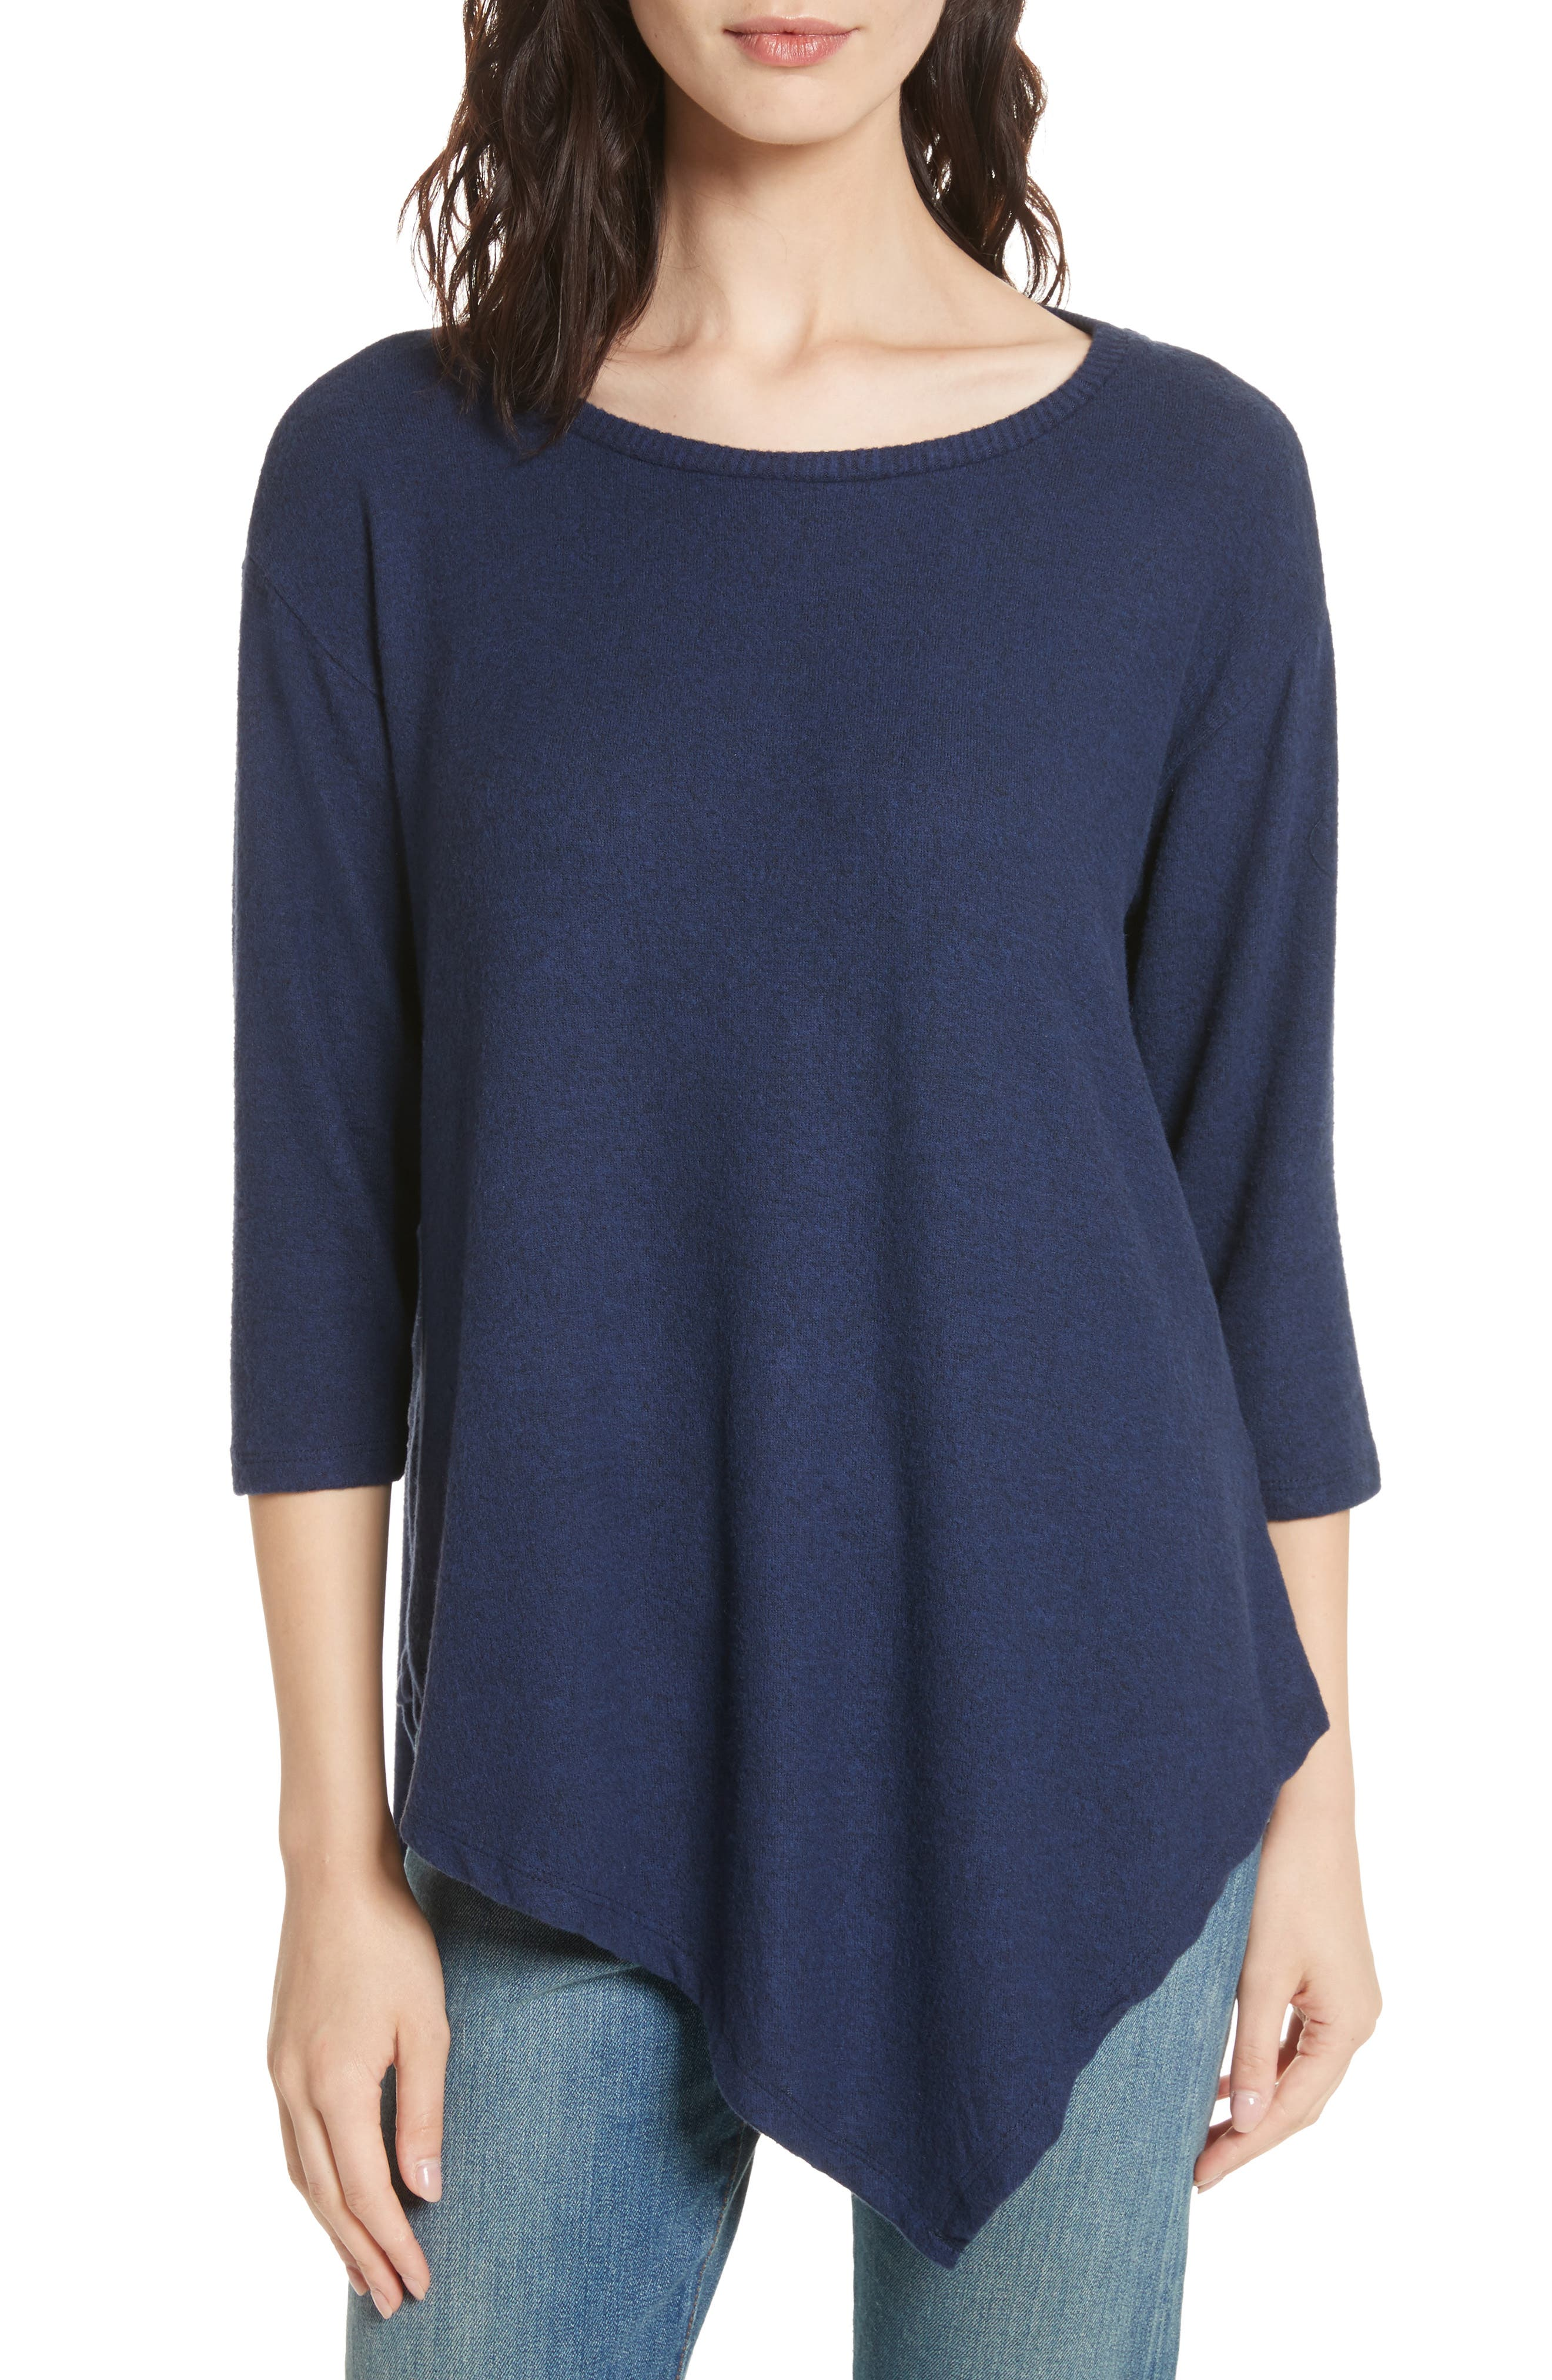 Alternate Image 1 Selected - Soft Joie Tammy Asymmetrical Sweater